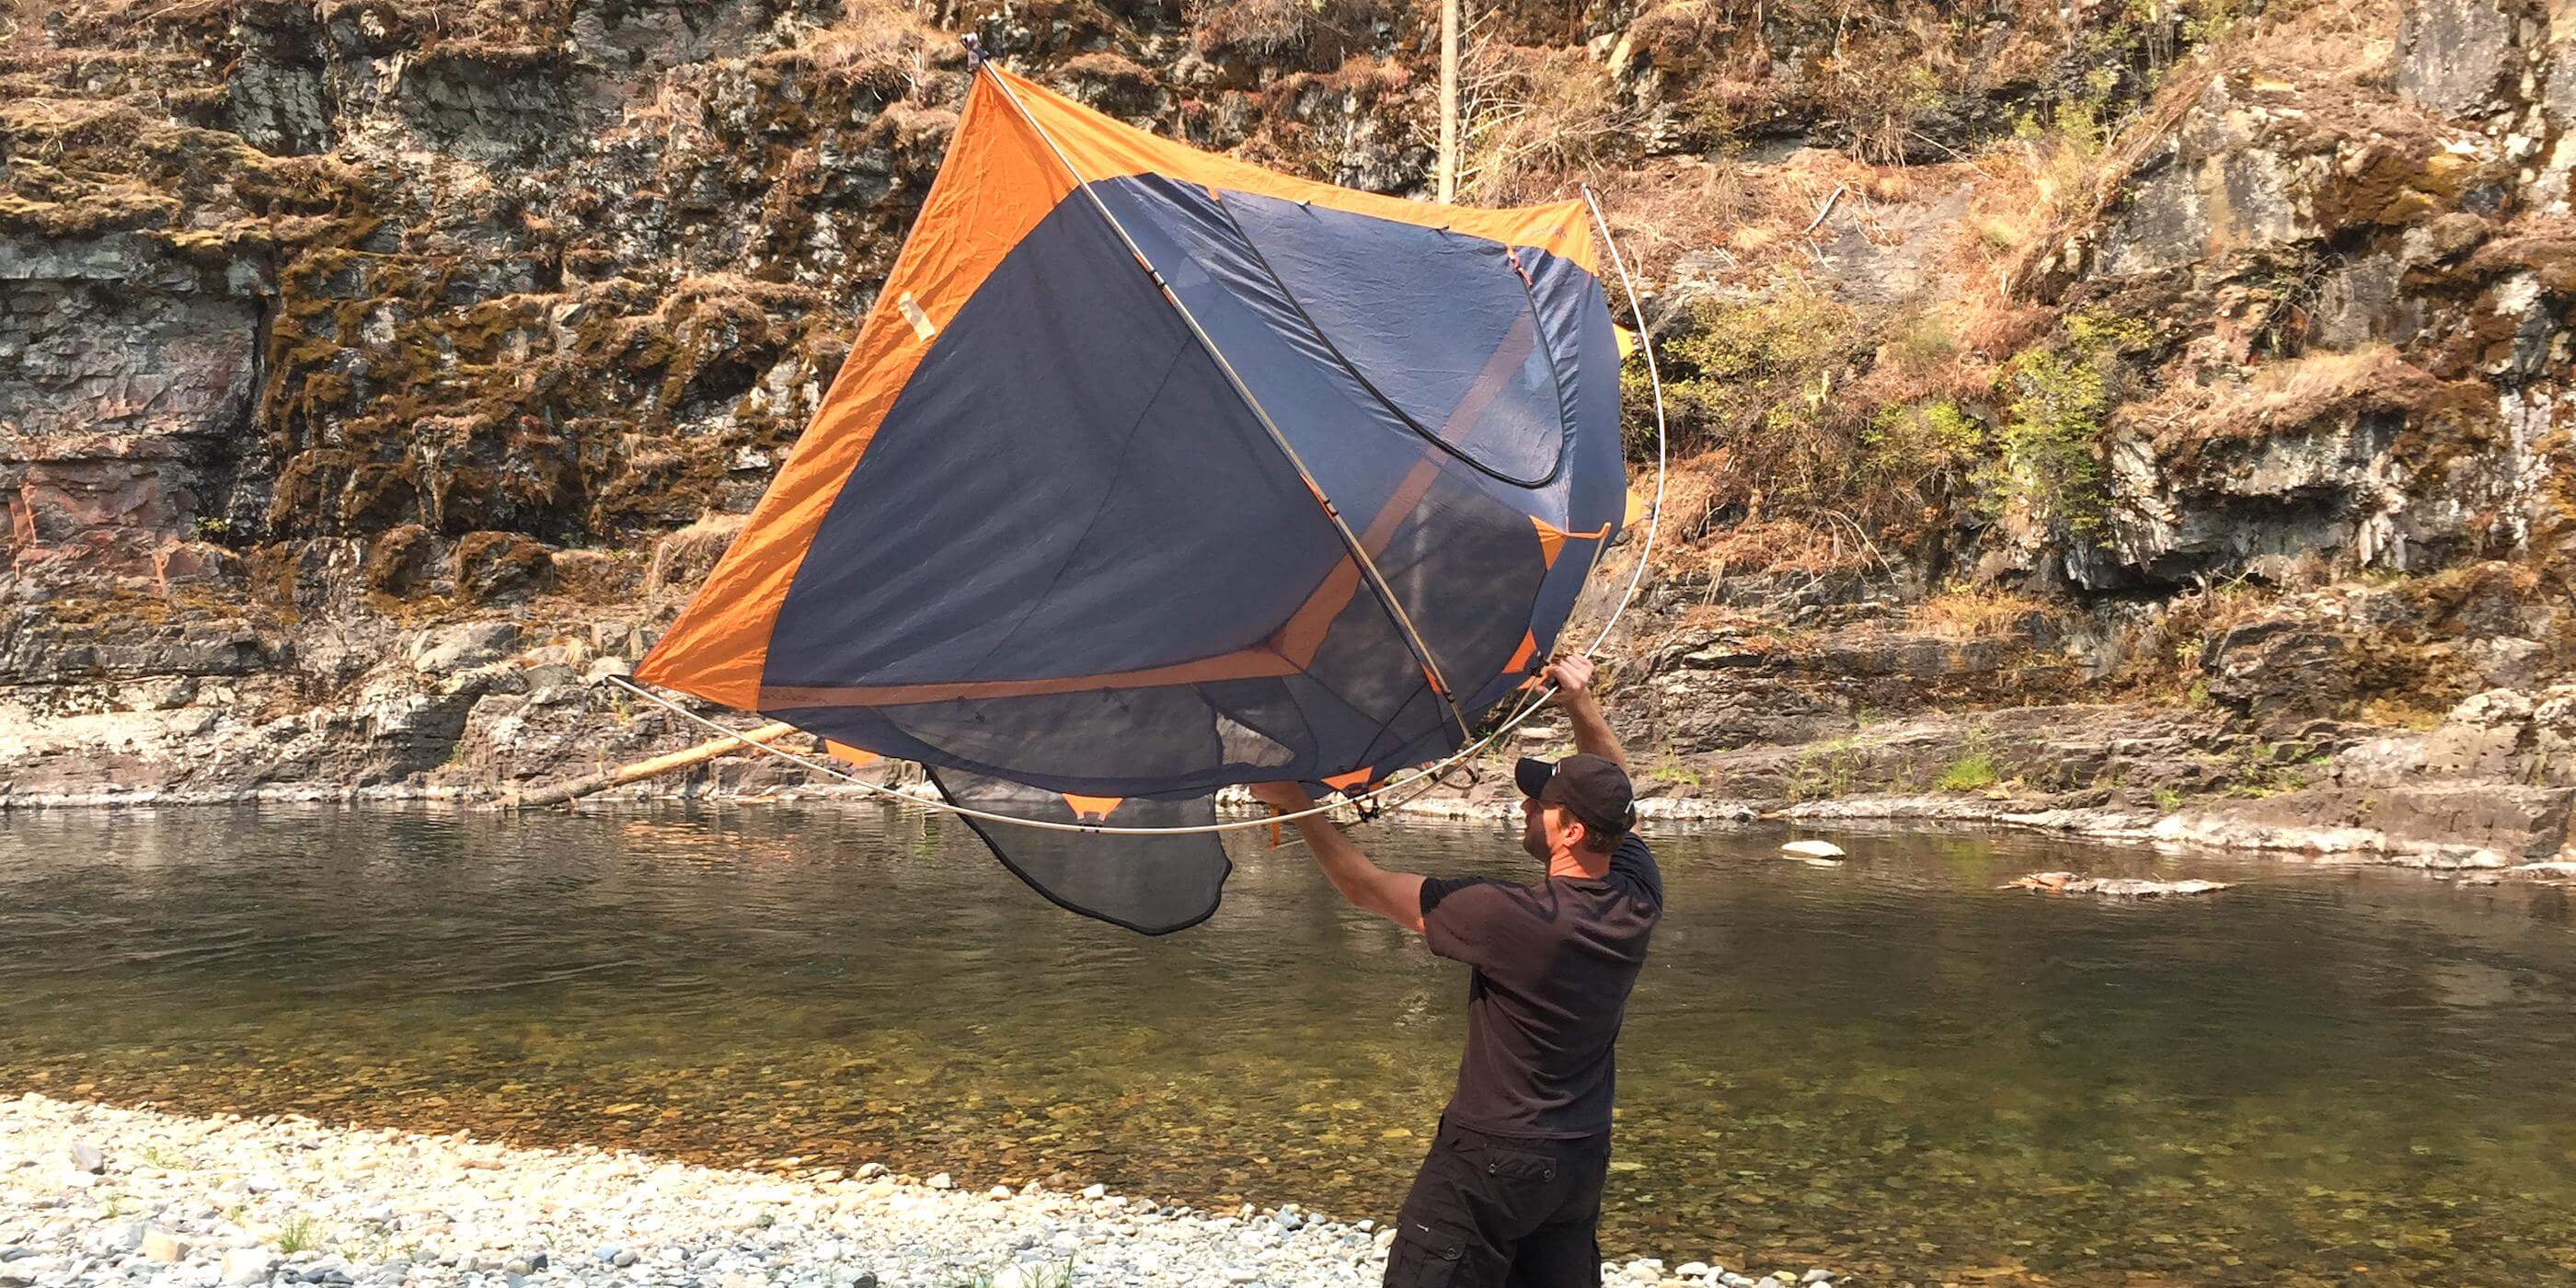 This is an image of the best backpacking tent freestanding construction